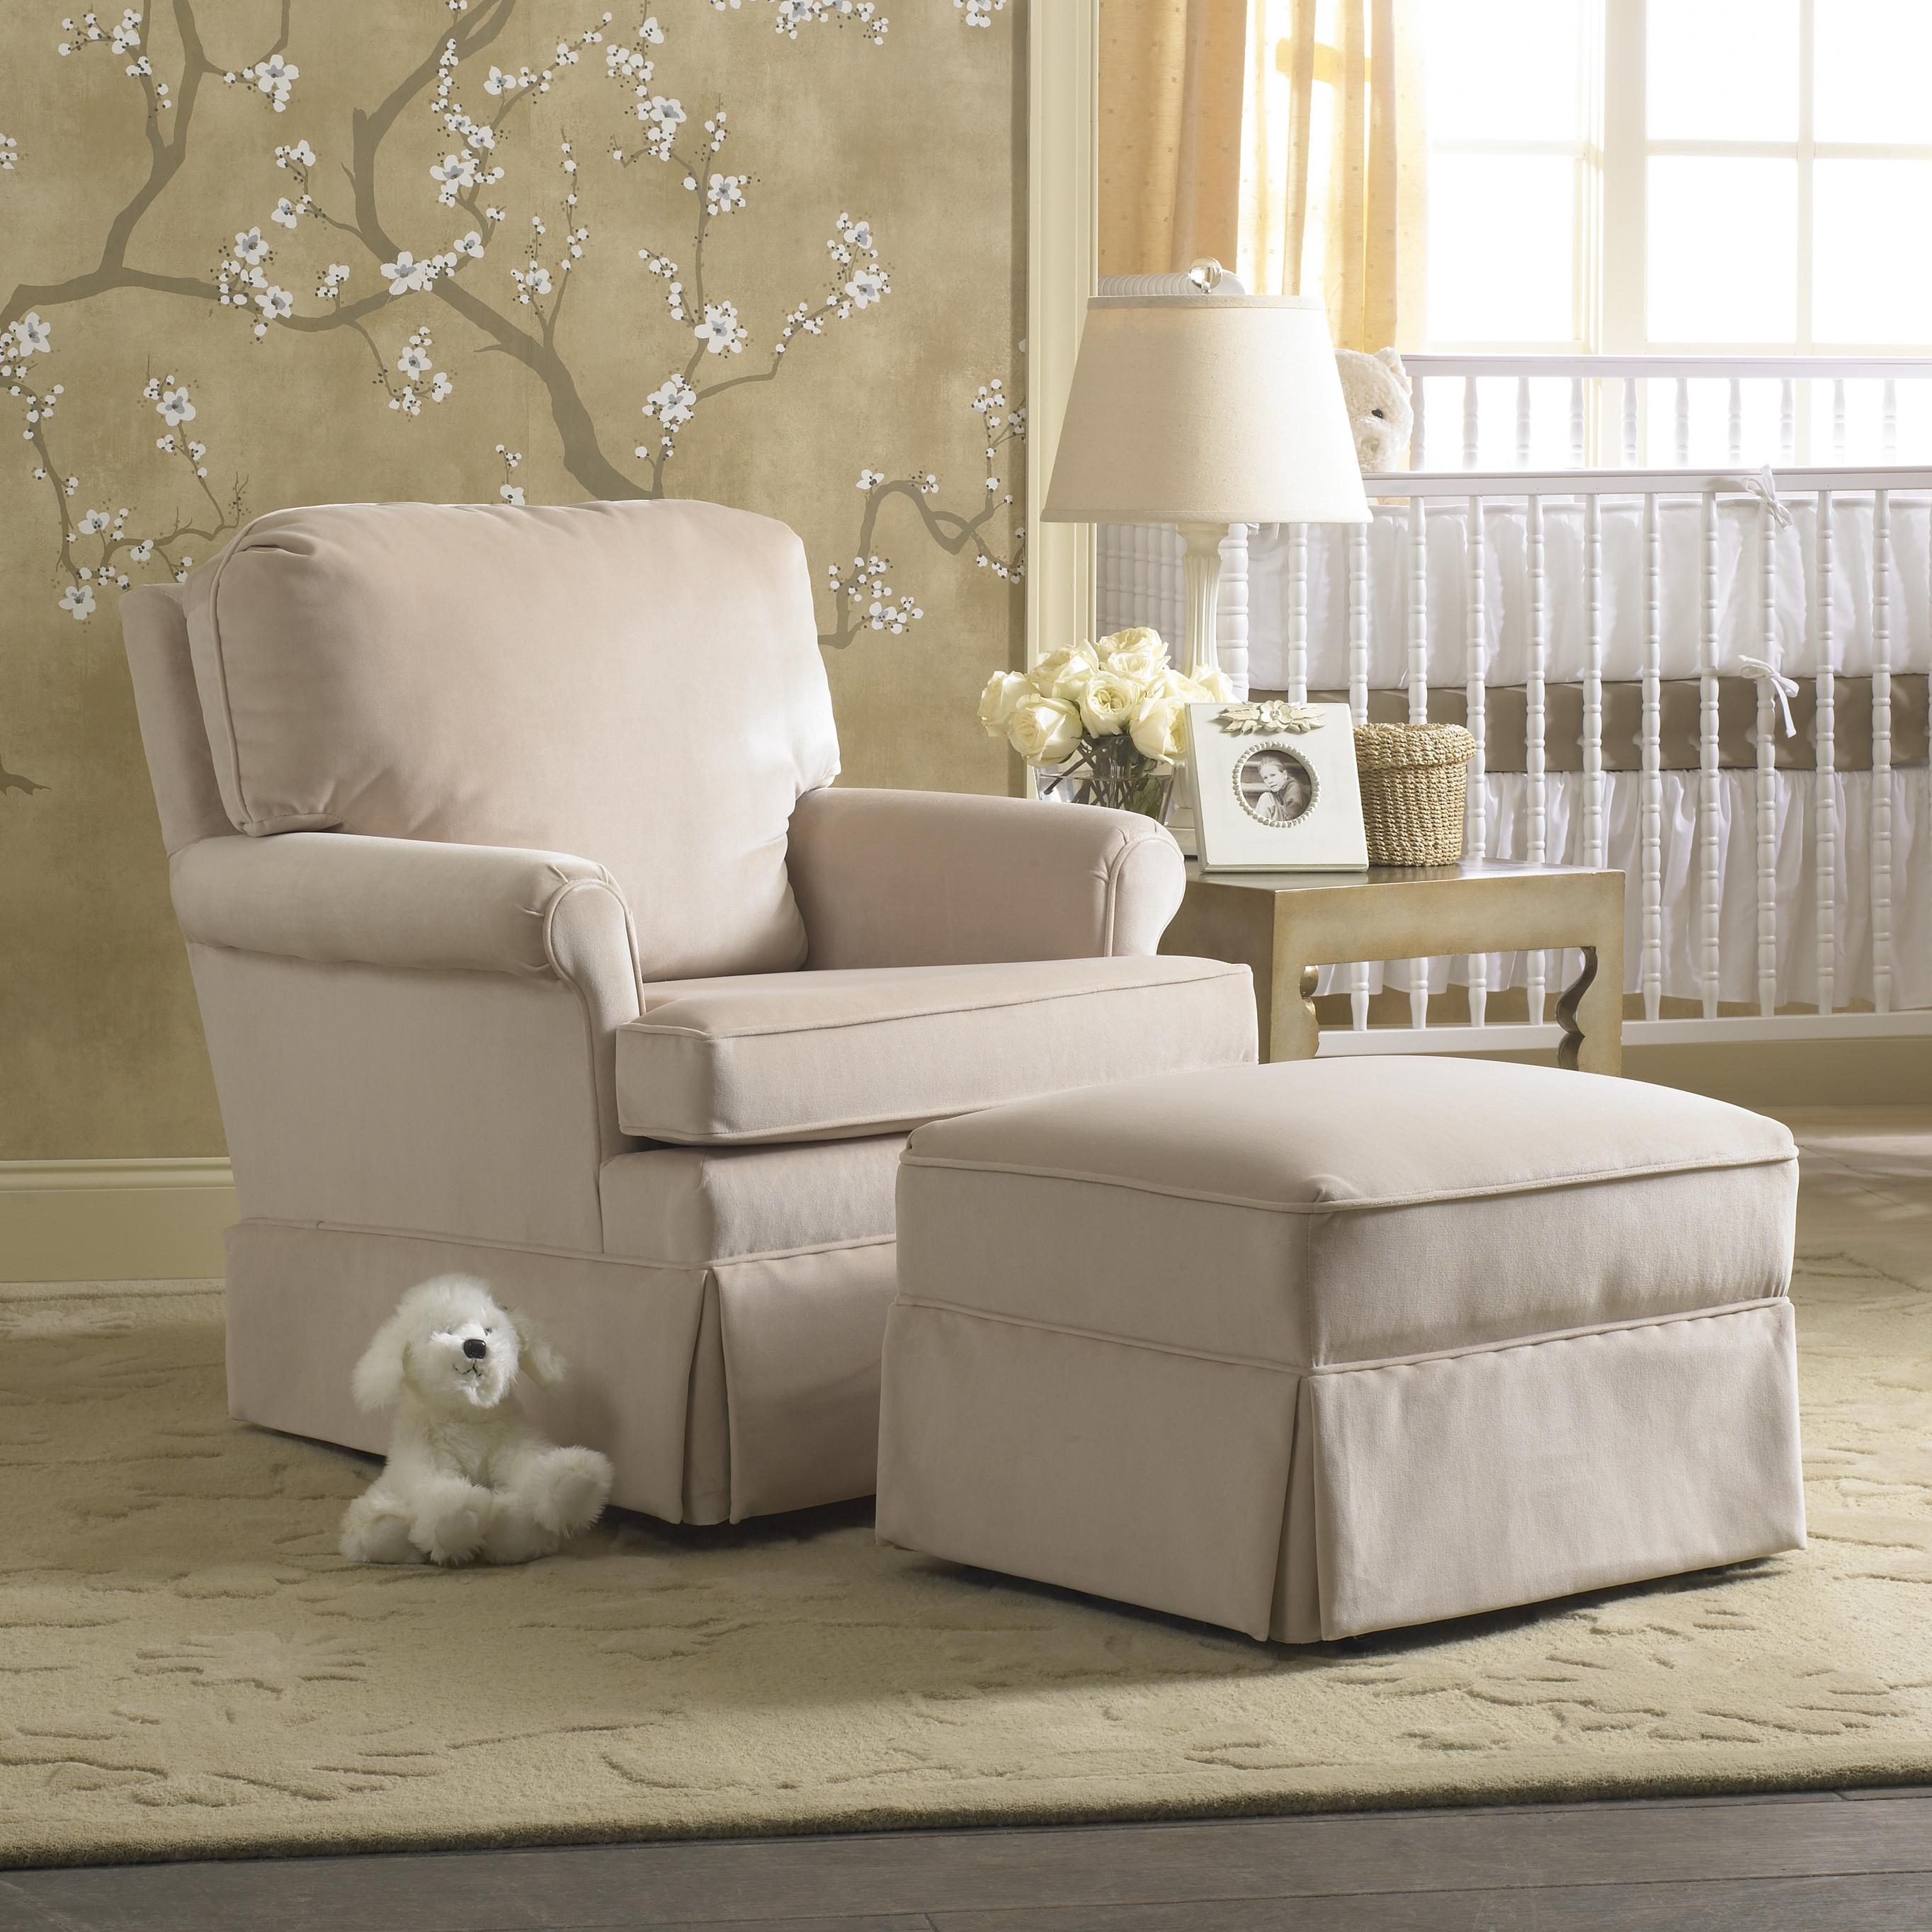 Baby rocking chairs gliders free image – Leather Swivel Glider Chair